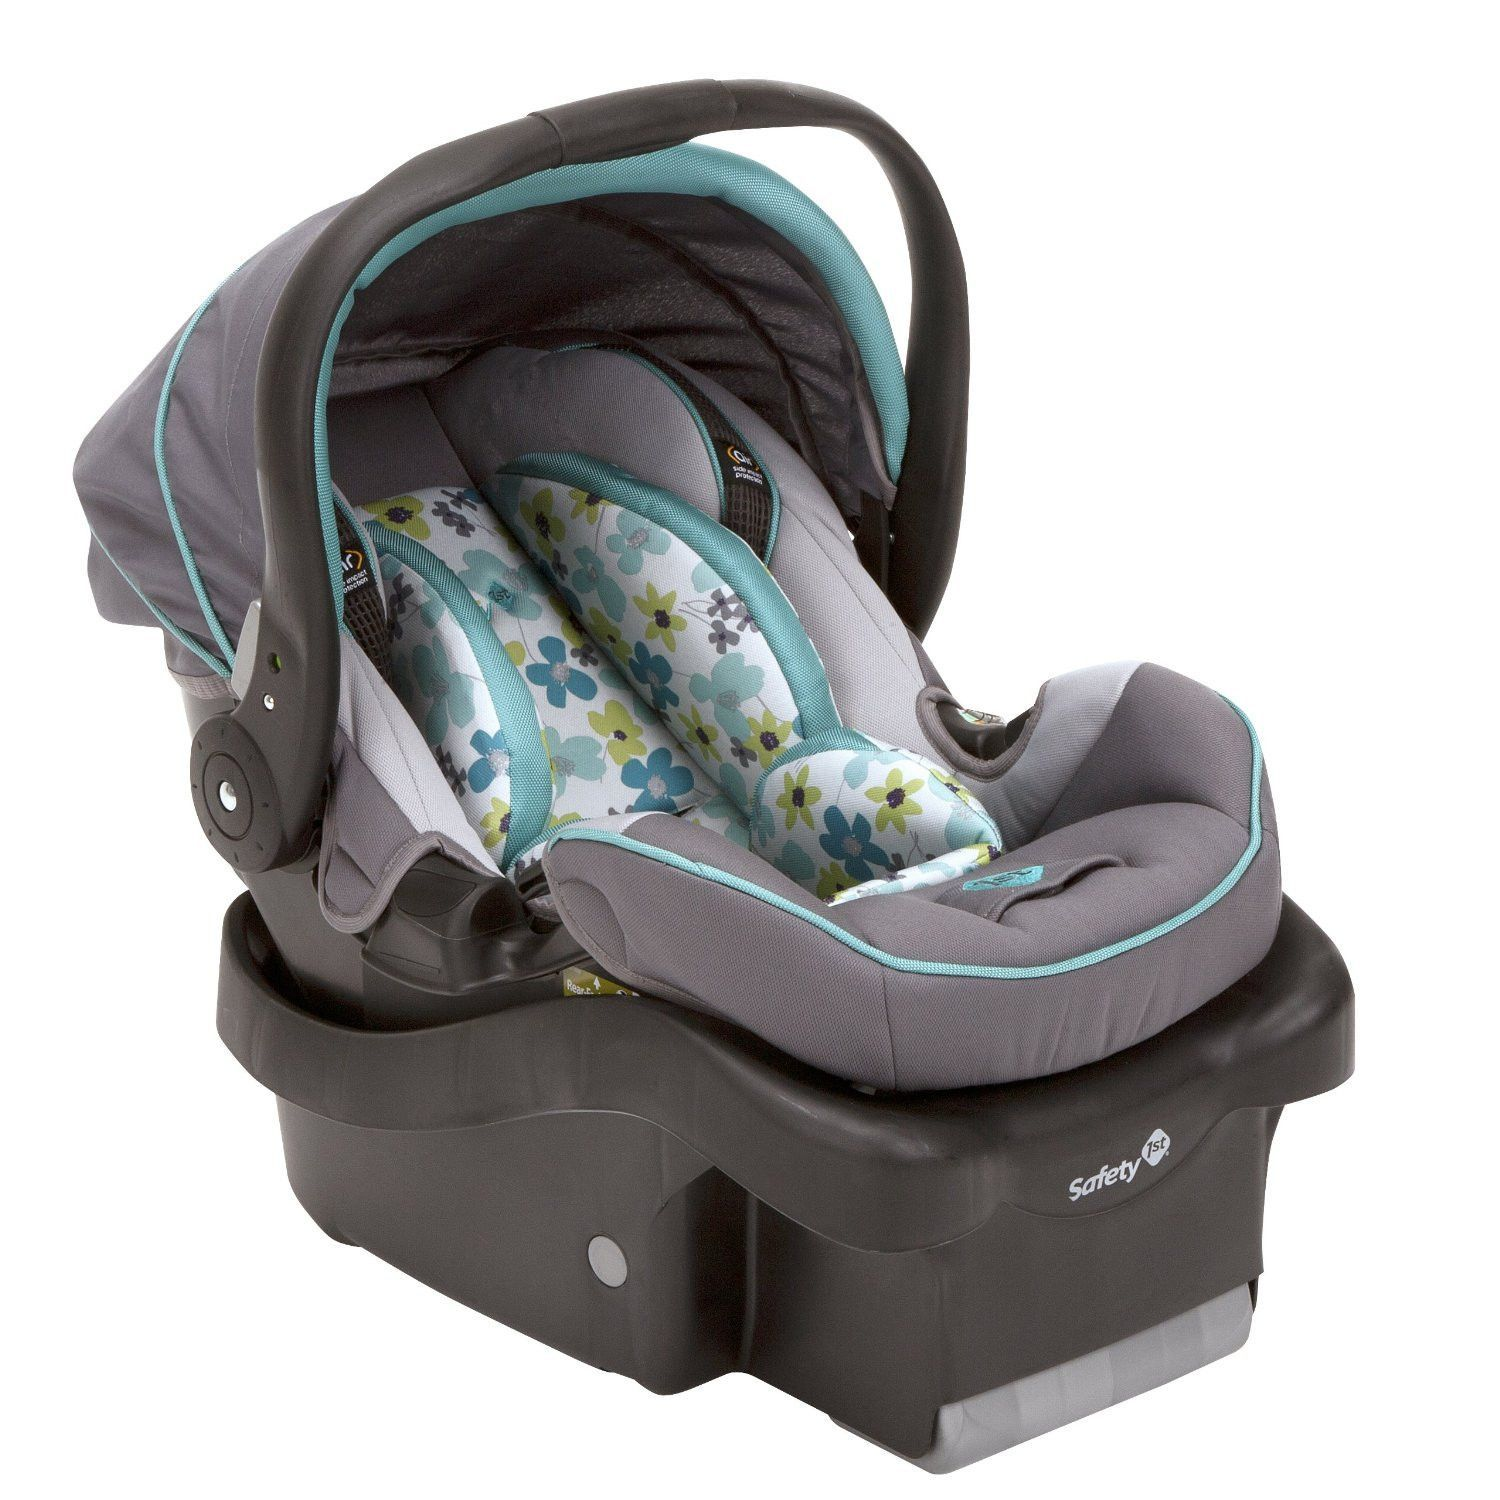 Safety 1st introduces the first infant car seat with Air